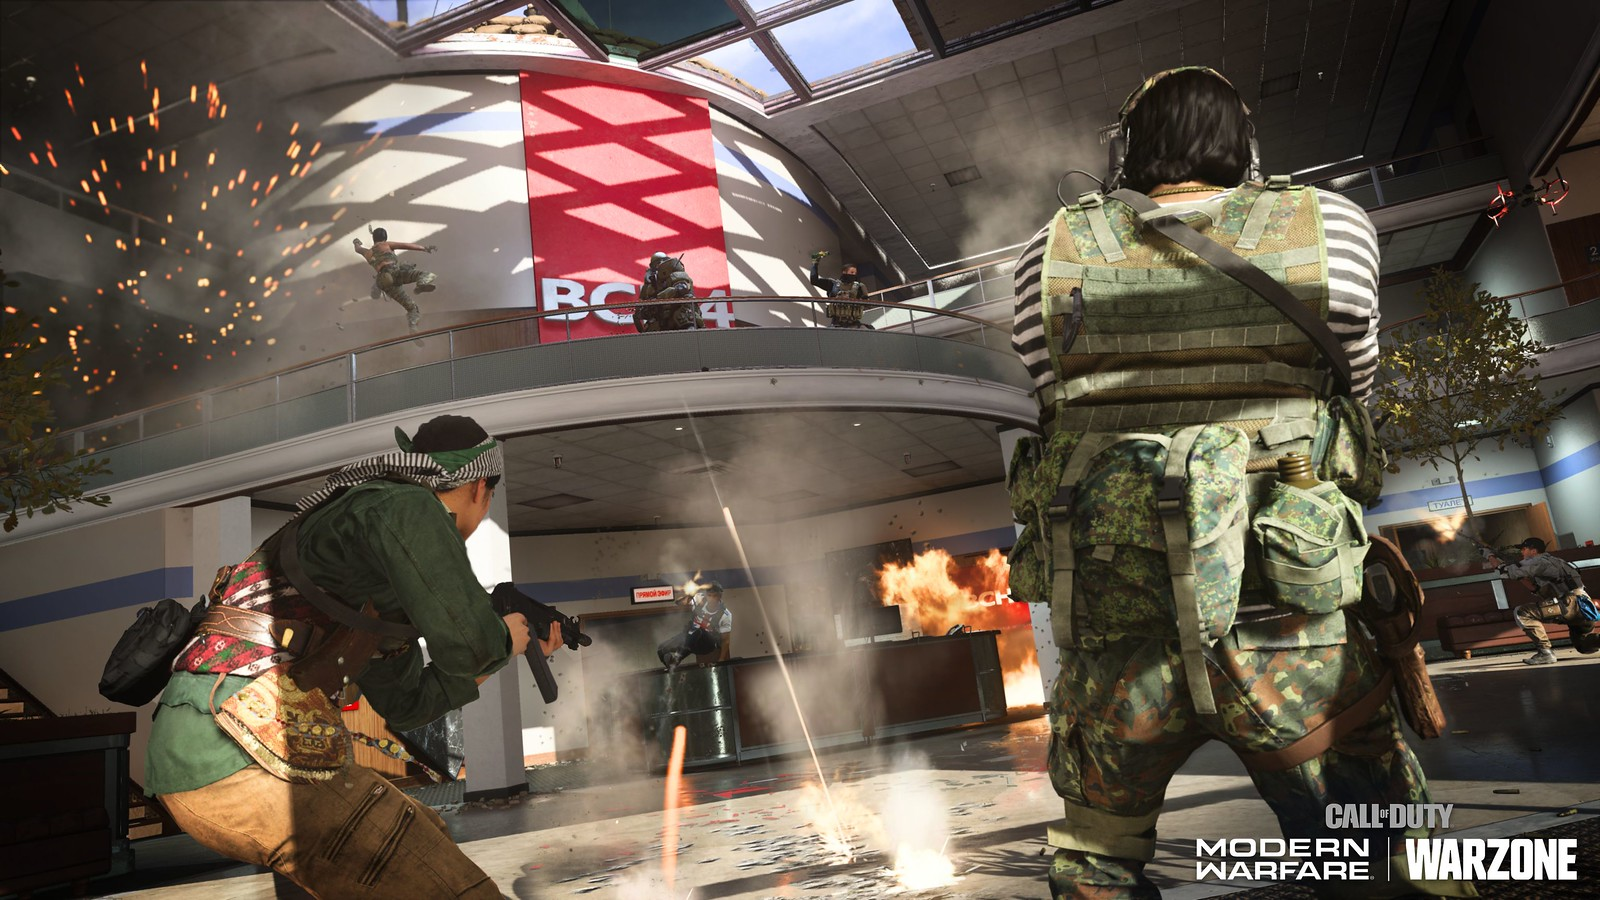 Call of Duty: Modern Warfare & Warzone